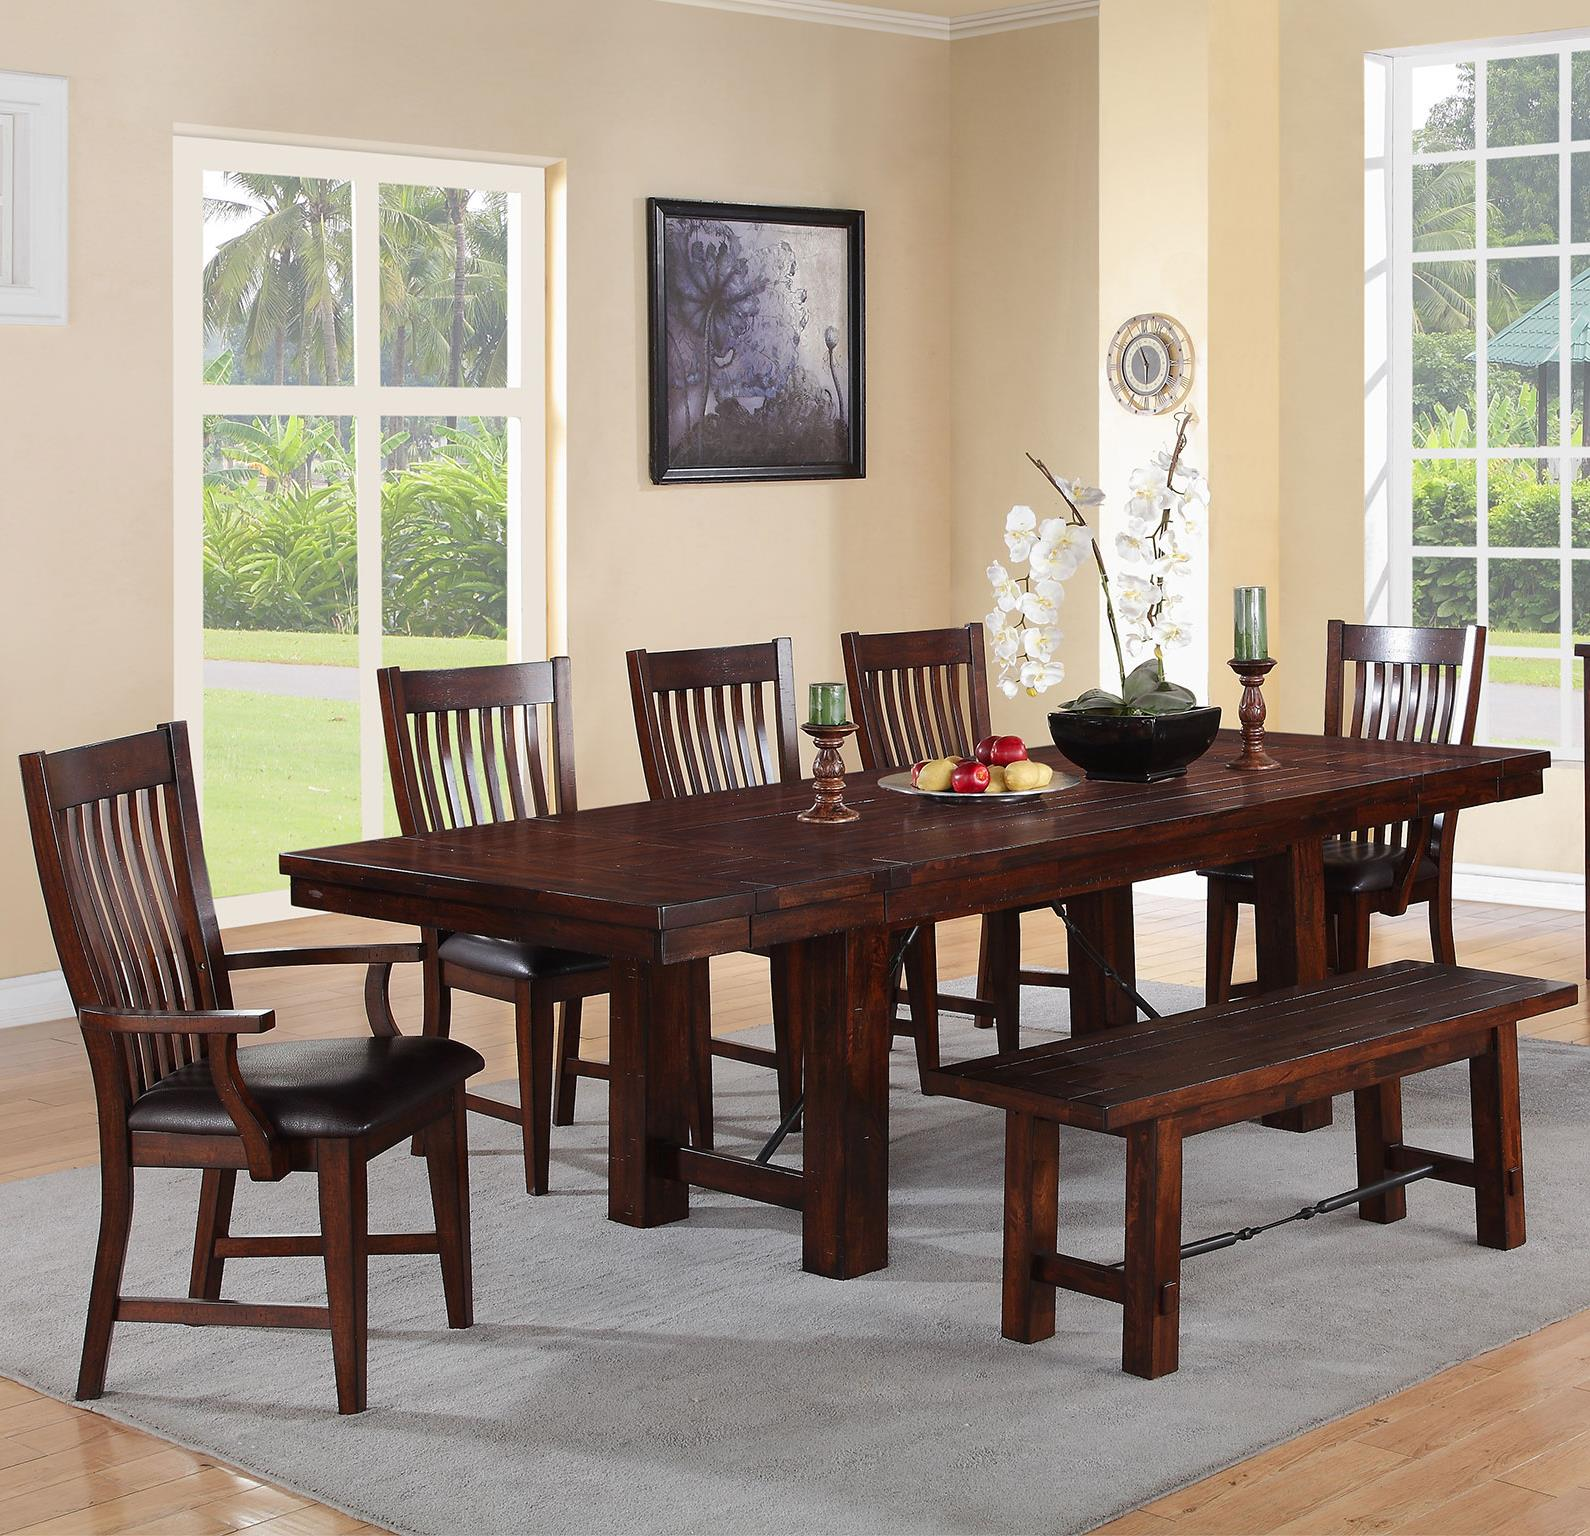 Retreat 7-Piece Dining Set with Bench by Winners Only at Pilgrim Furniture City